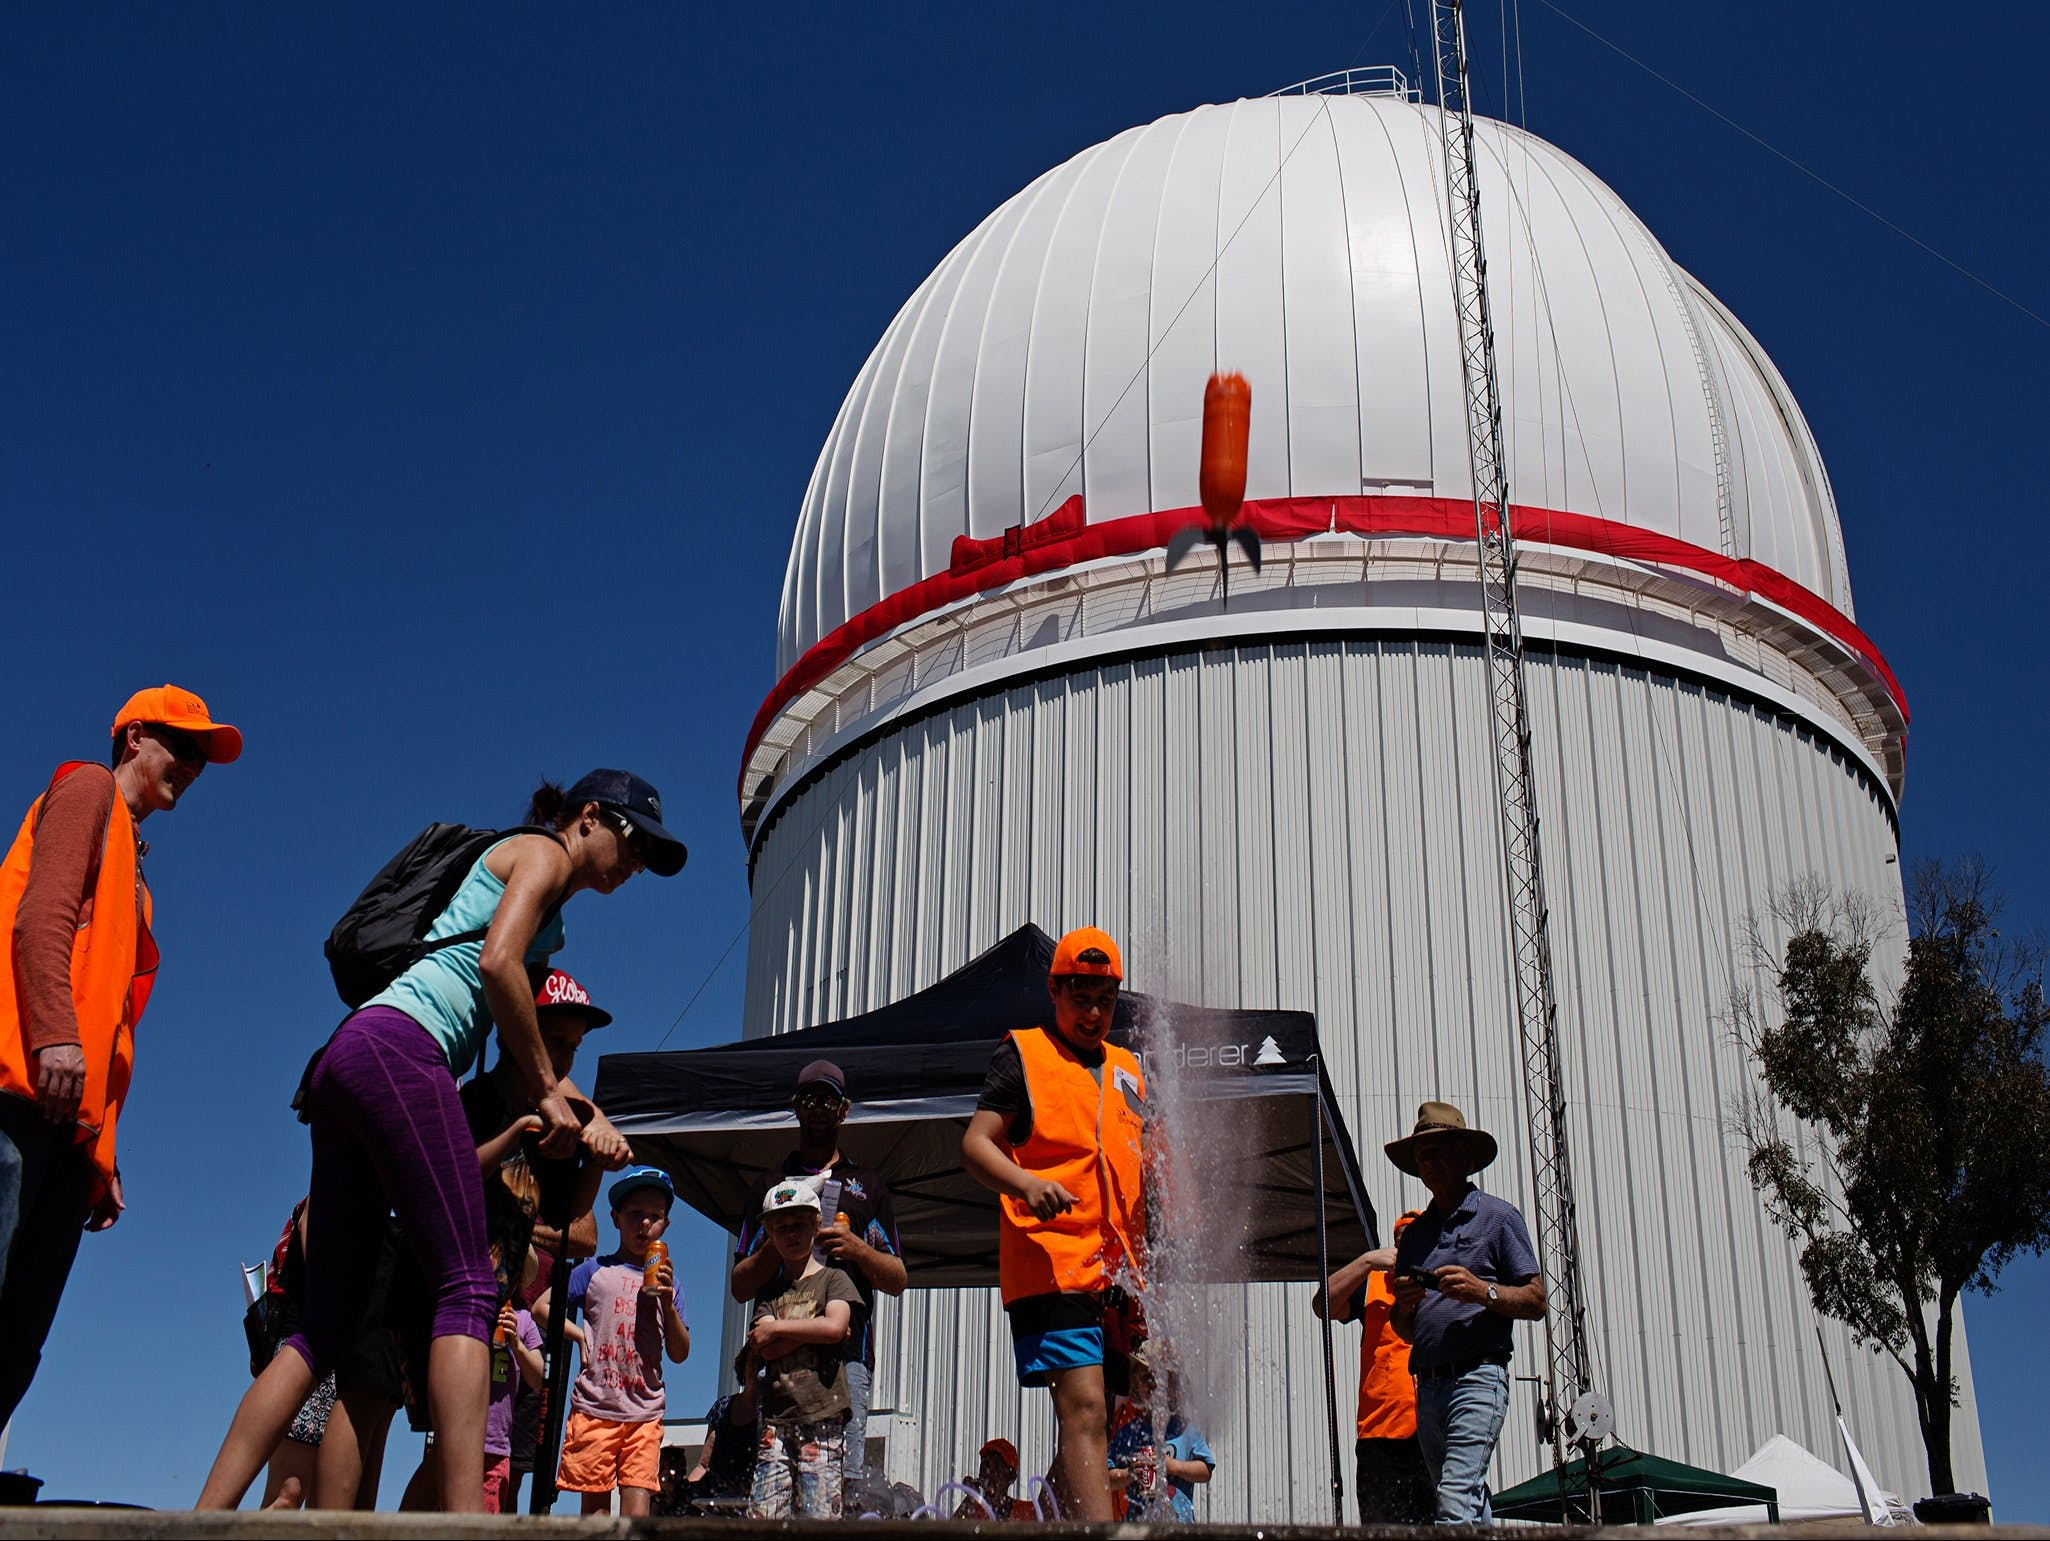 Siding Spring Observatory Open Day - Cancelled due to COVID 19 - Accommodation Adelaide